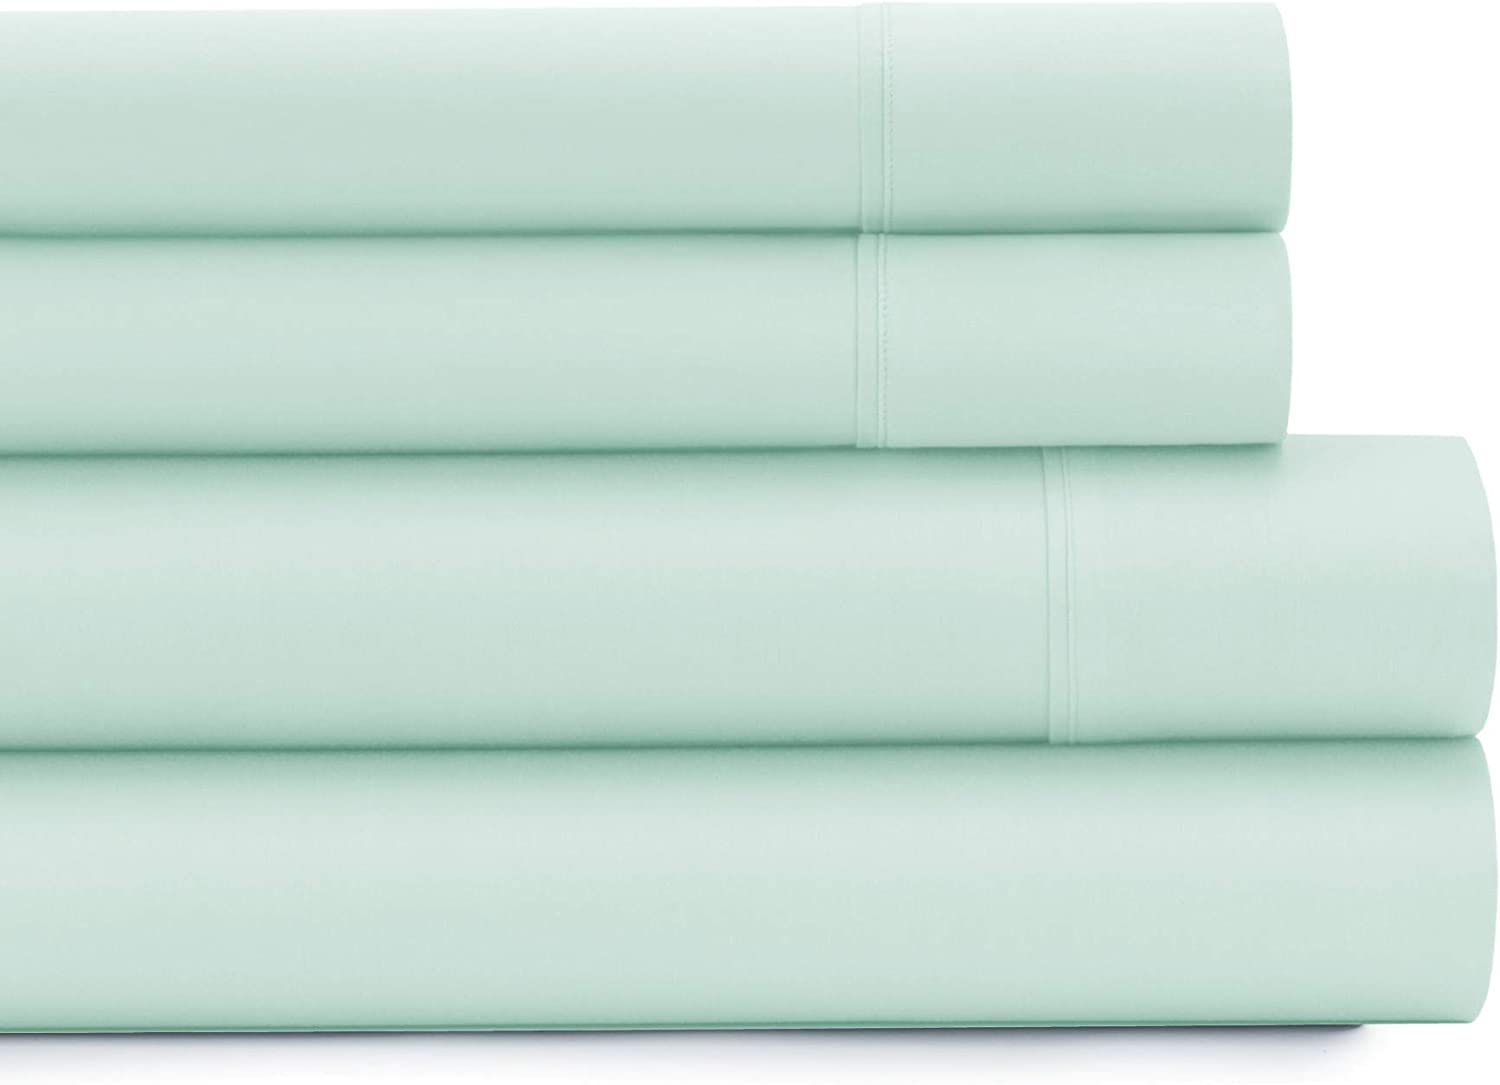 American Home Collection - Deluxe 3 Piece Bed Sheet Sets of Brushed Microfiber - Wrinkle Resistant Silky Soft Touch (Twin, Hint of Mint)